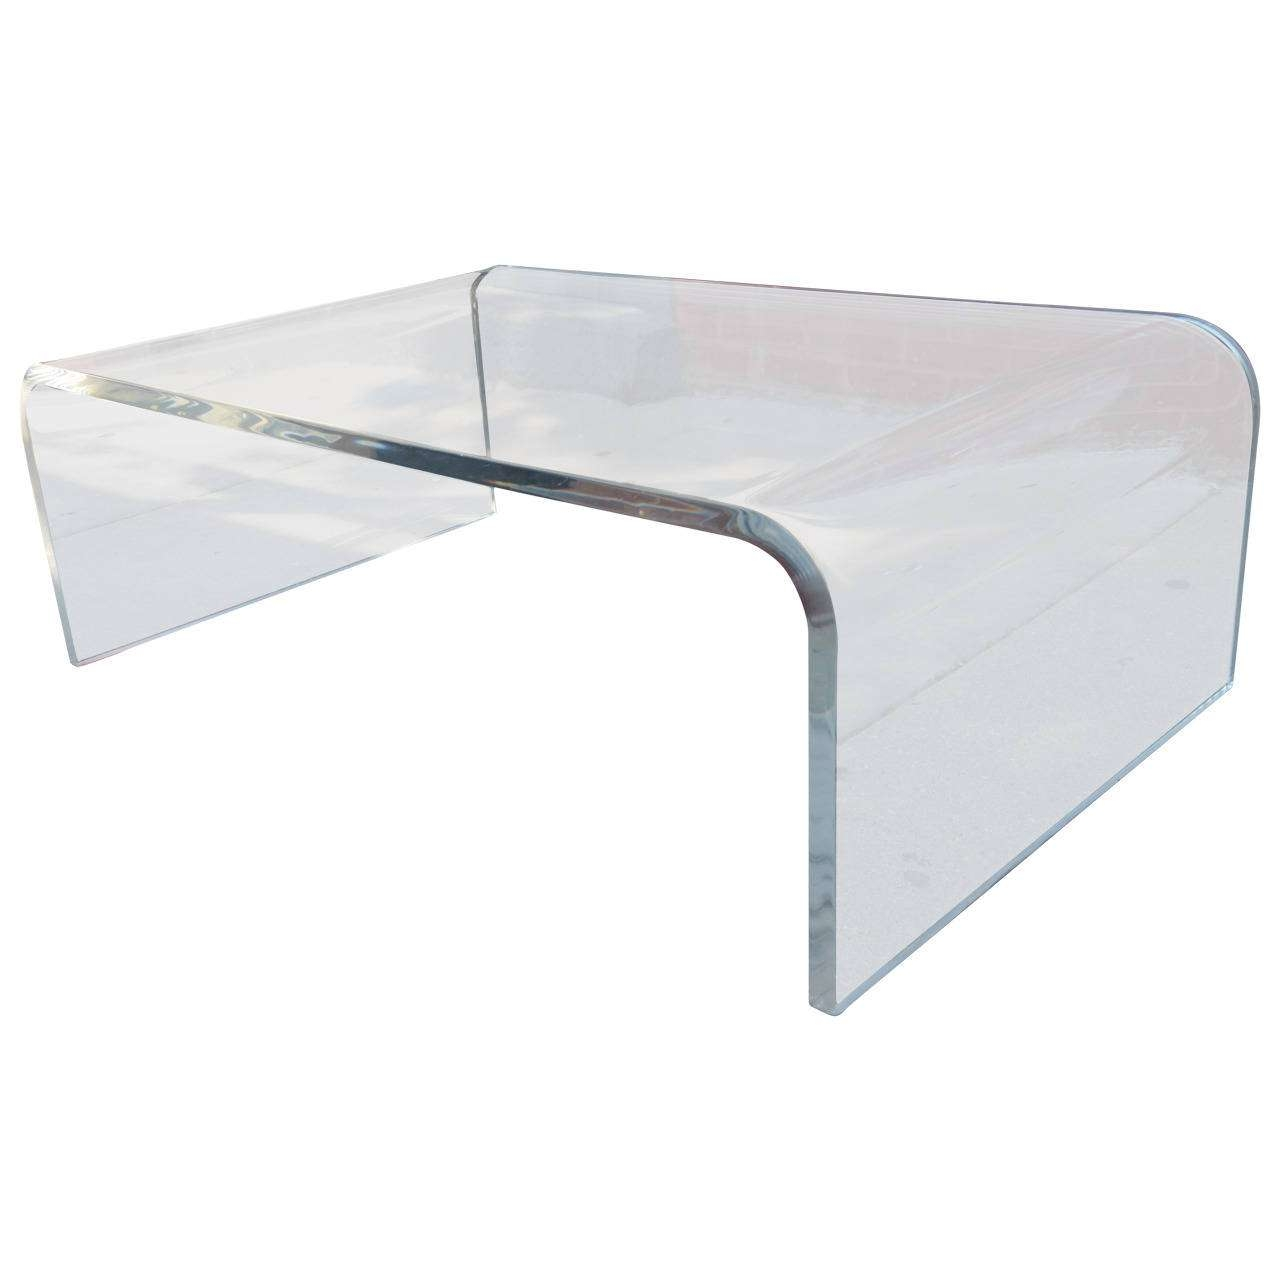 Newest Perspex Coffee Table For Coffee Tables : Furniture Square Clear Adair Acrylic Coffee Table (Gallery 3 of 20)